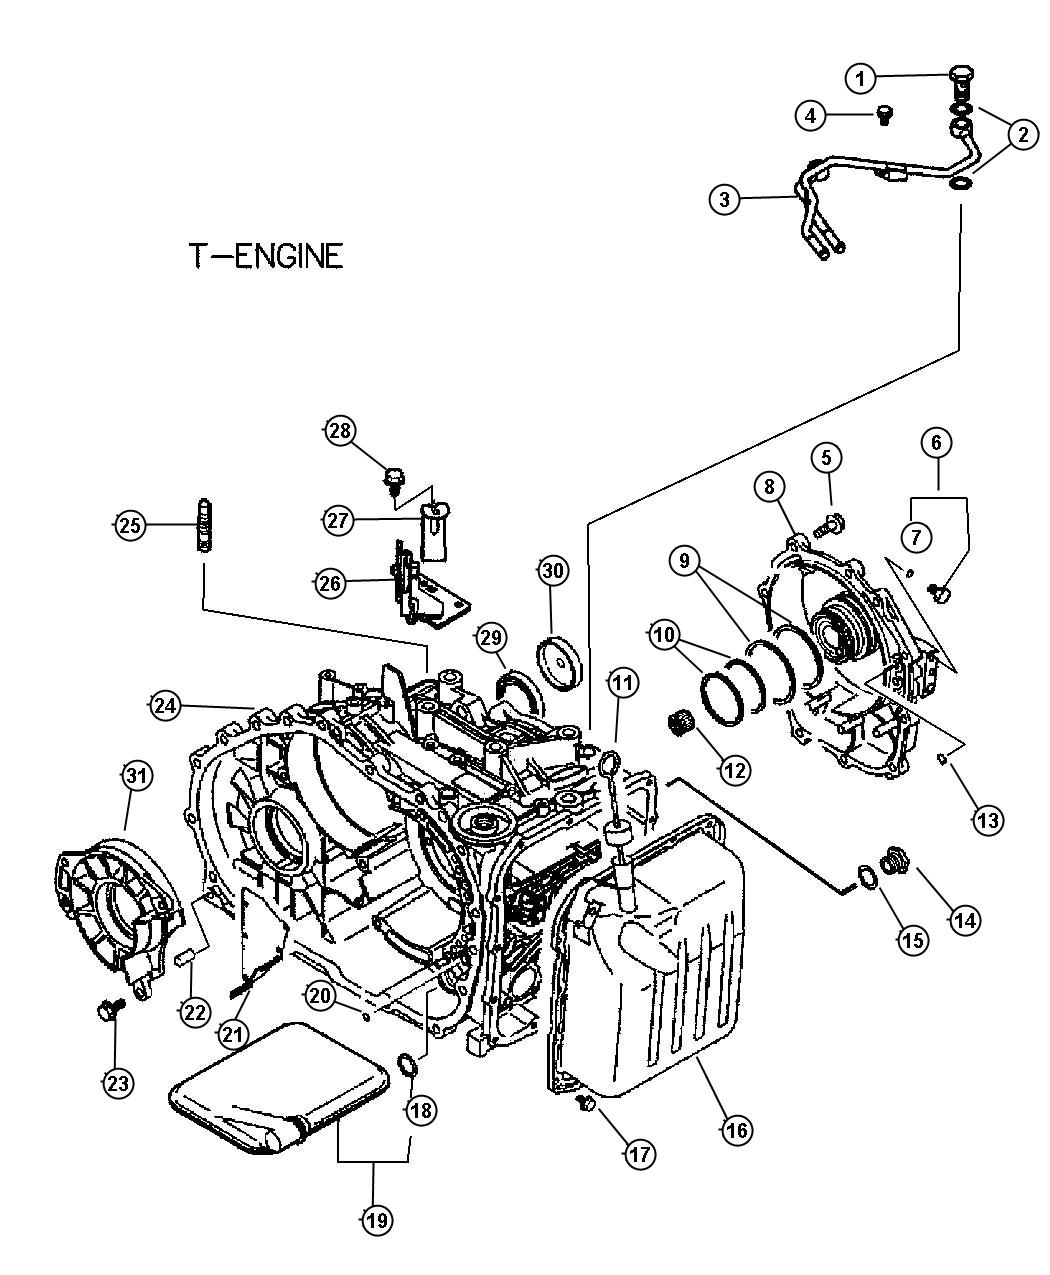 Chrysler Town & Country Oil seal. Interchangeable